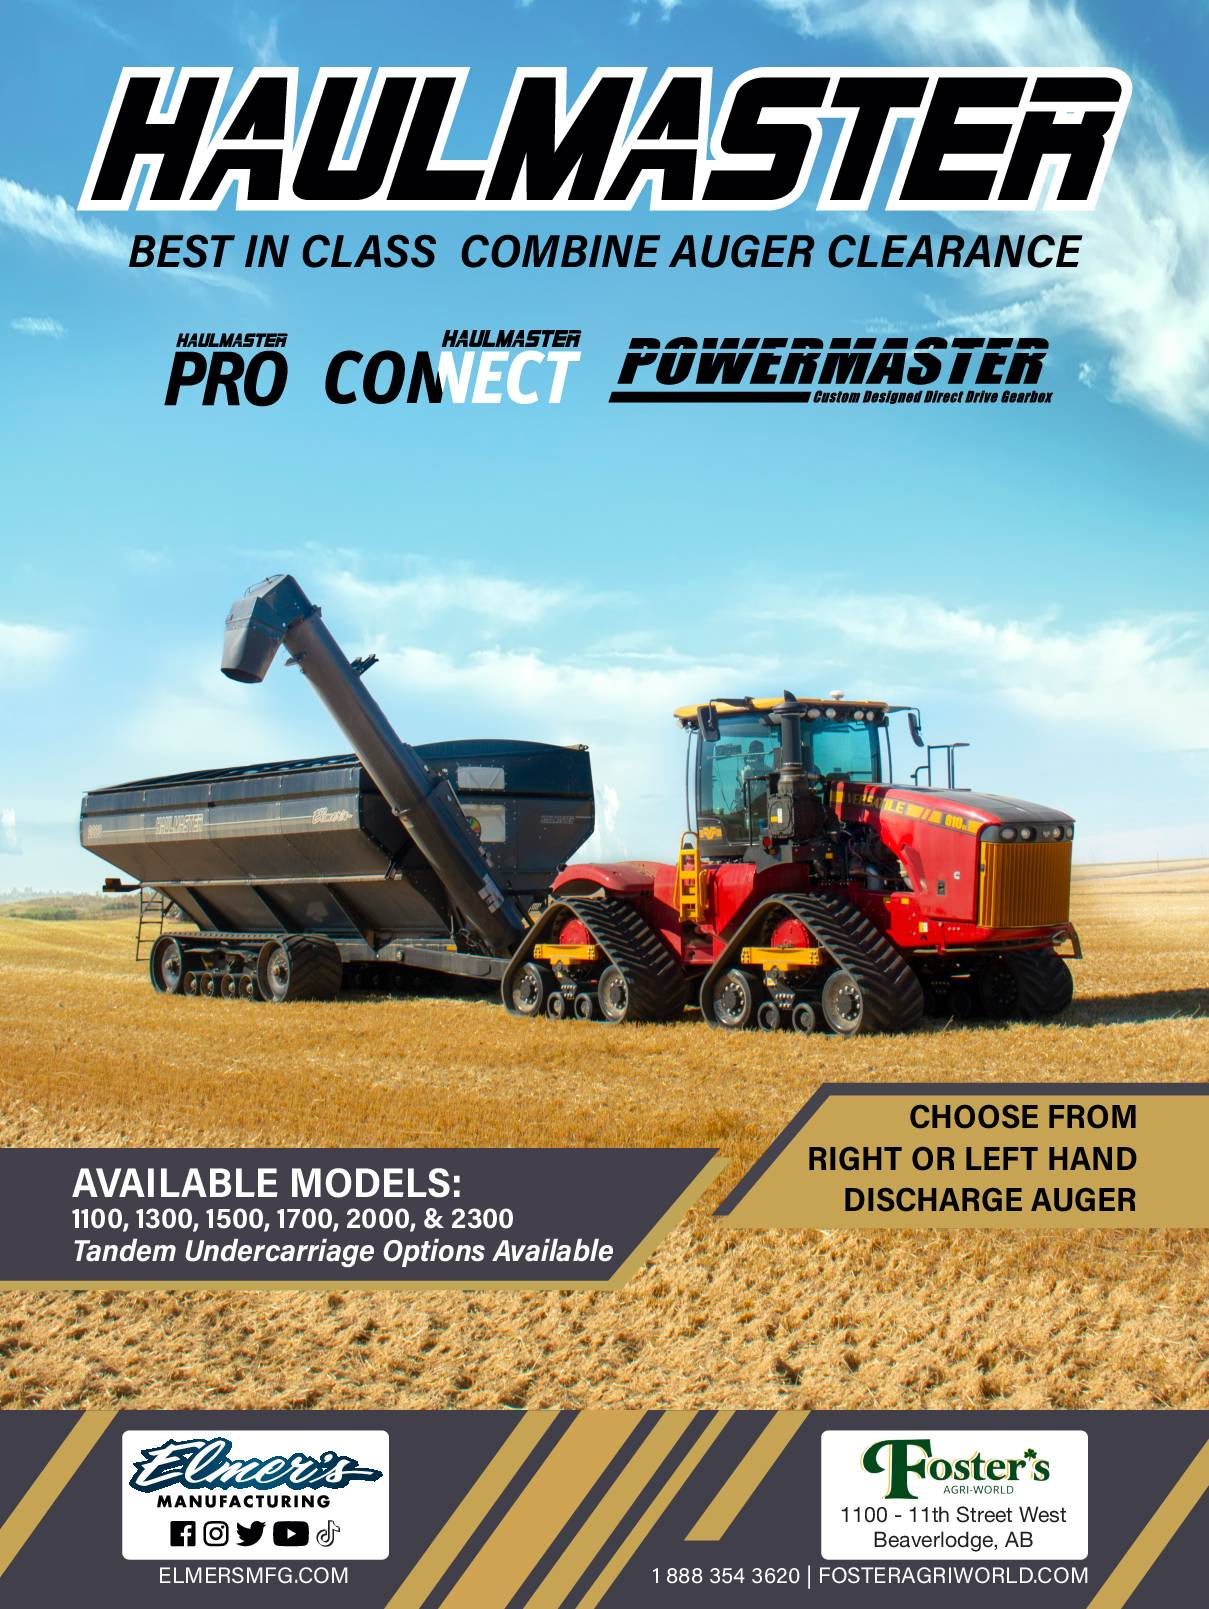 Best in Class Combine Auger Clearance